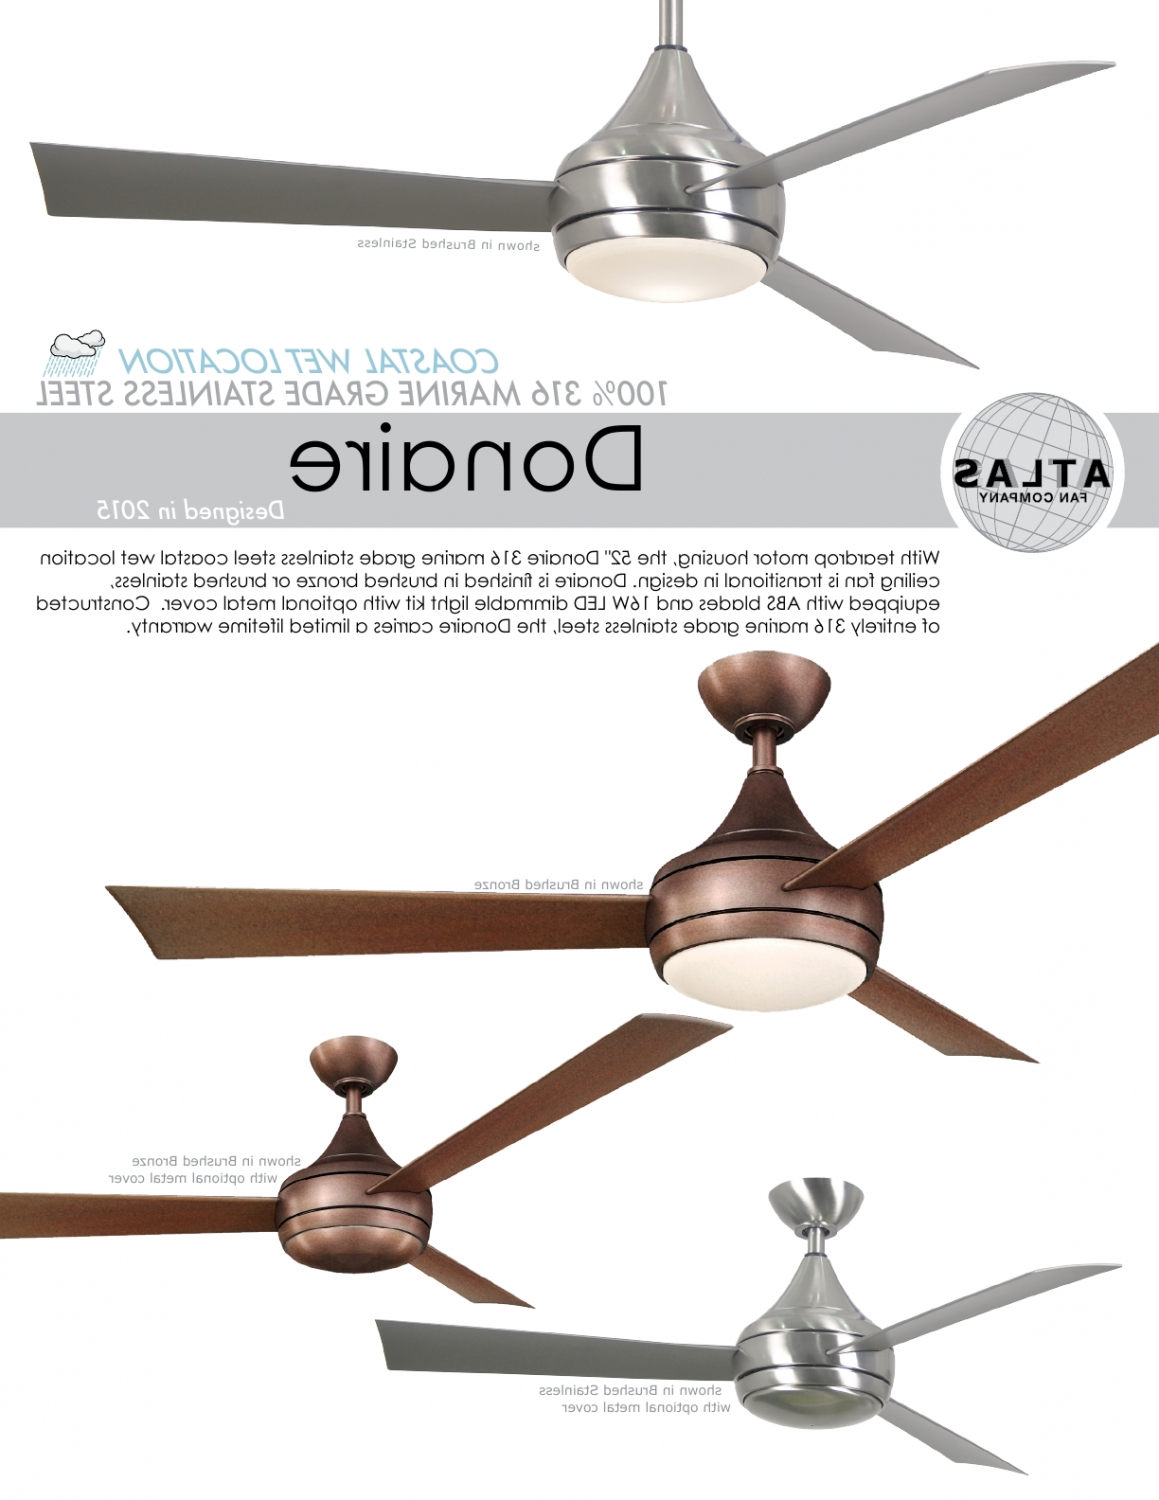 Outdoor Ceiling Fans For Wet Locations With Regard To Newest Donaire Ceiling Fan For Balcony Terrace Verandah Outdoor Spaces (View 18 of 20)